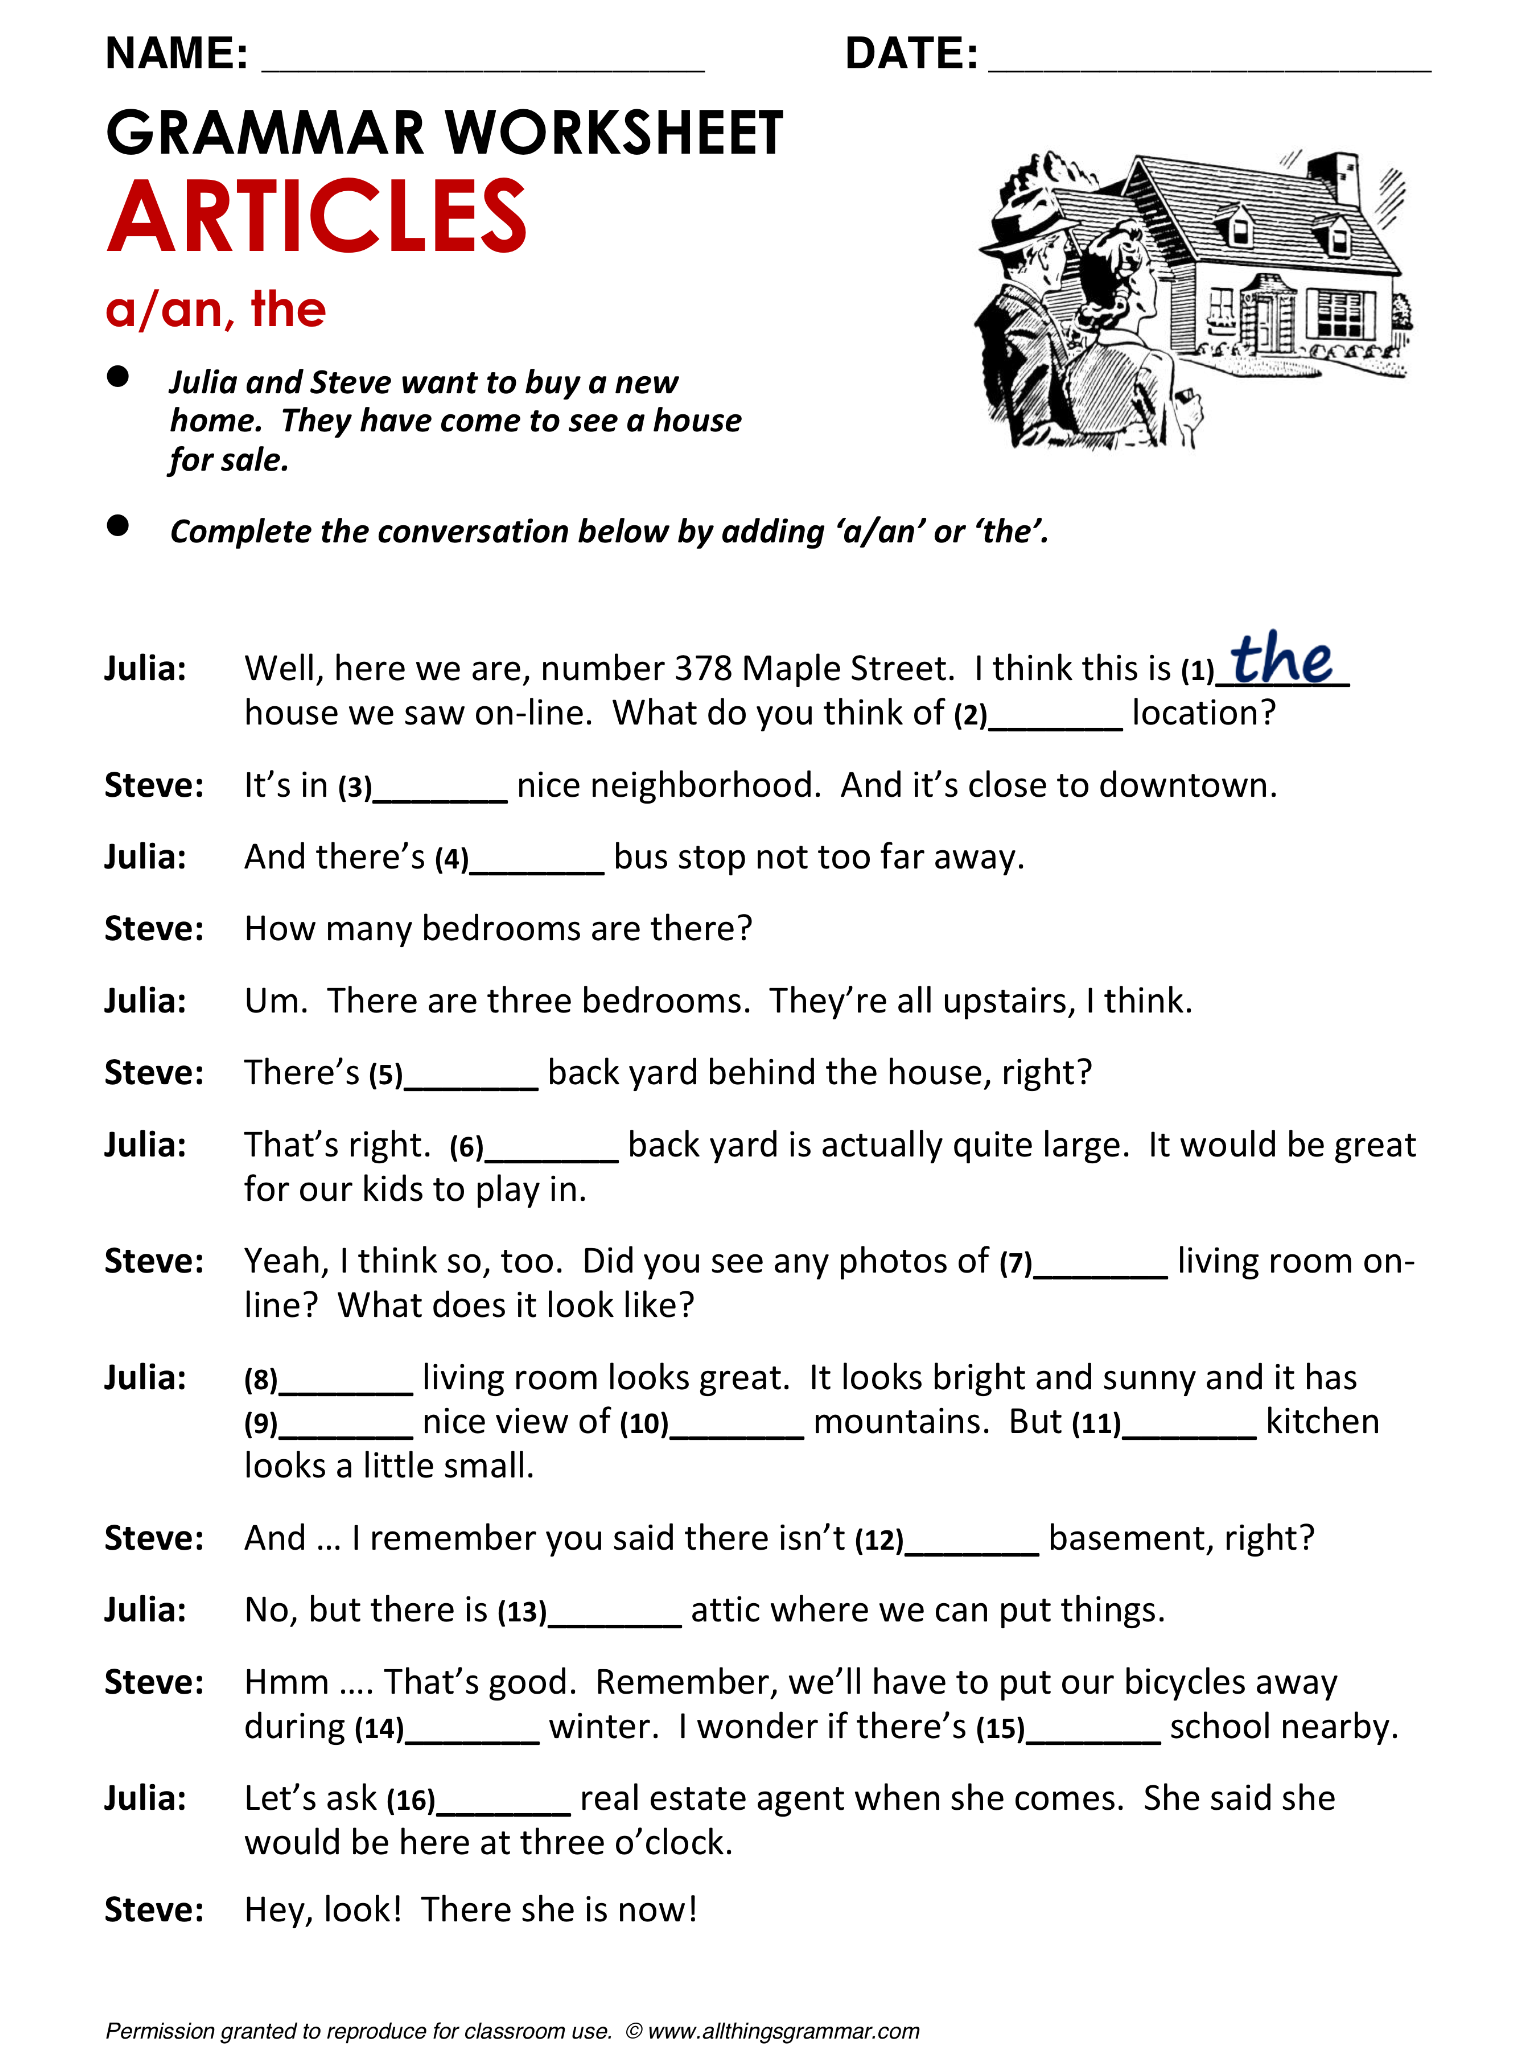 Worksheets Grammar Worksheets College english grammar articles www allthingsgrammar comarticles html html